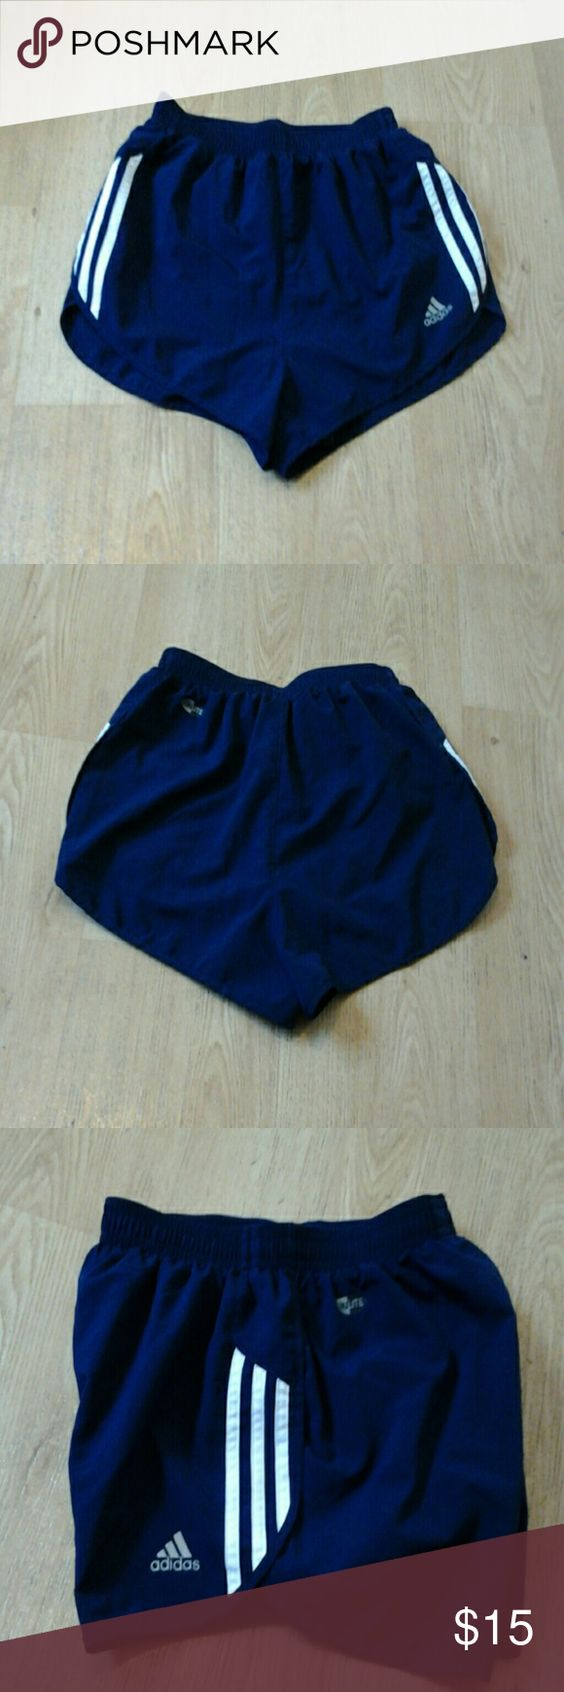 Adidas Short Clima lite Adidas Short Clima lite  Navy&white stripes  Good condition Adidas Shorts